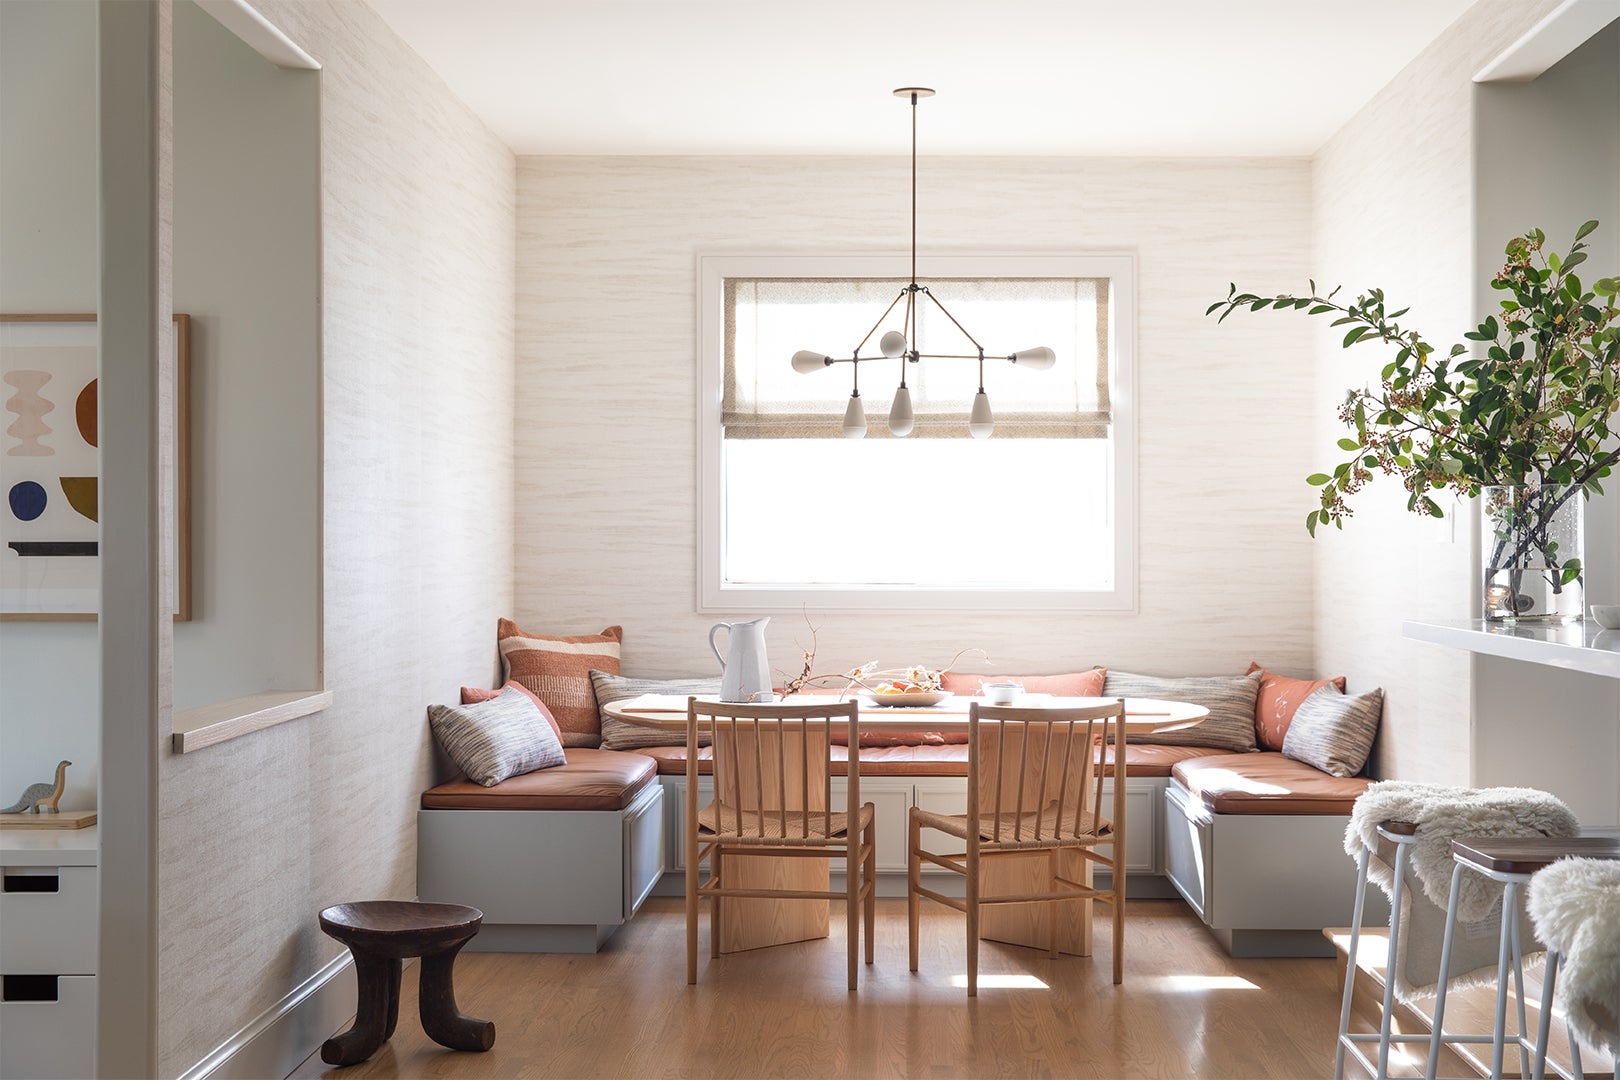 Built-in banquette with leather seats